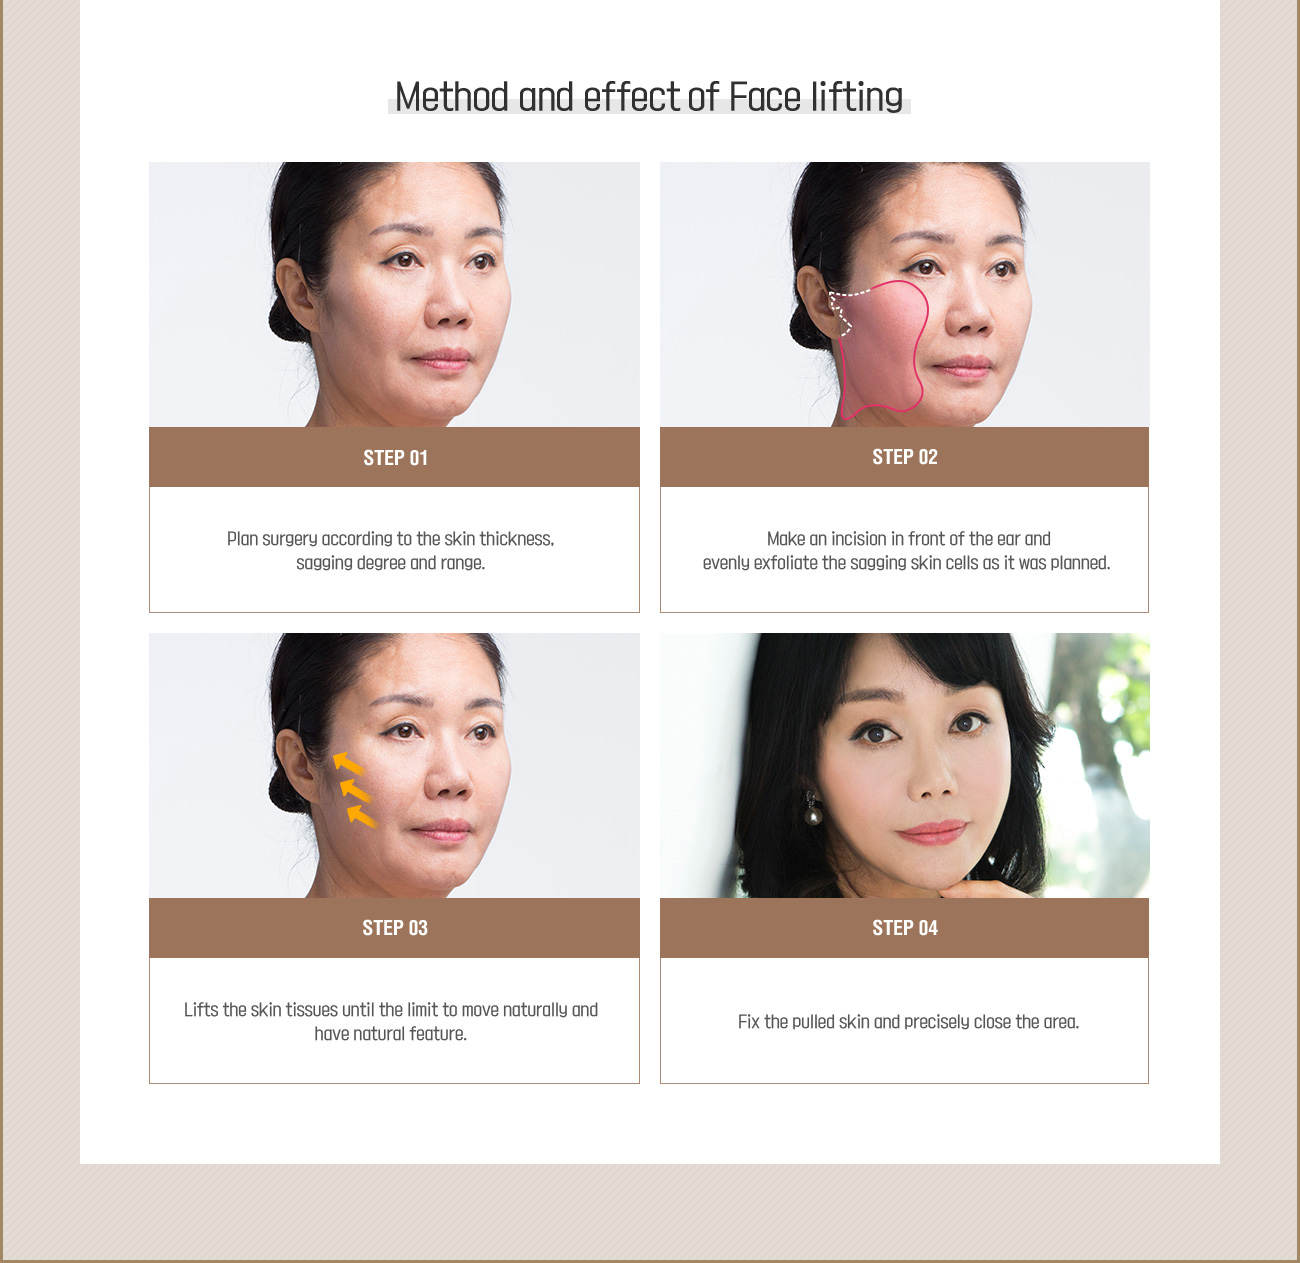 methid and effec of face lifting